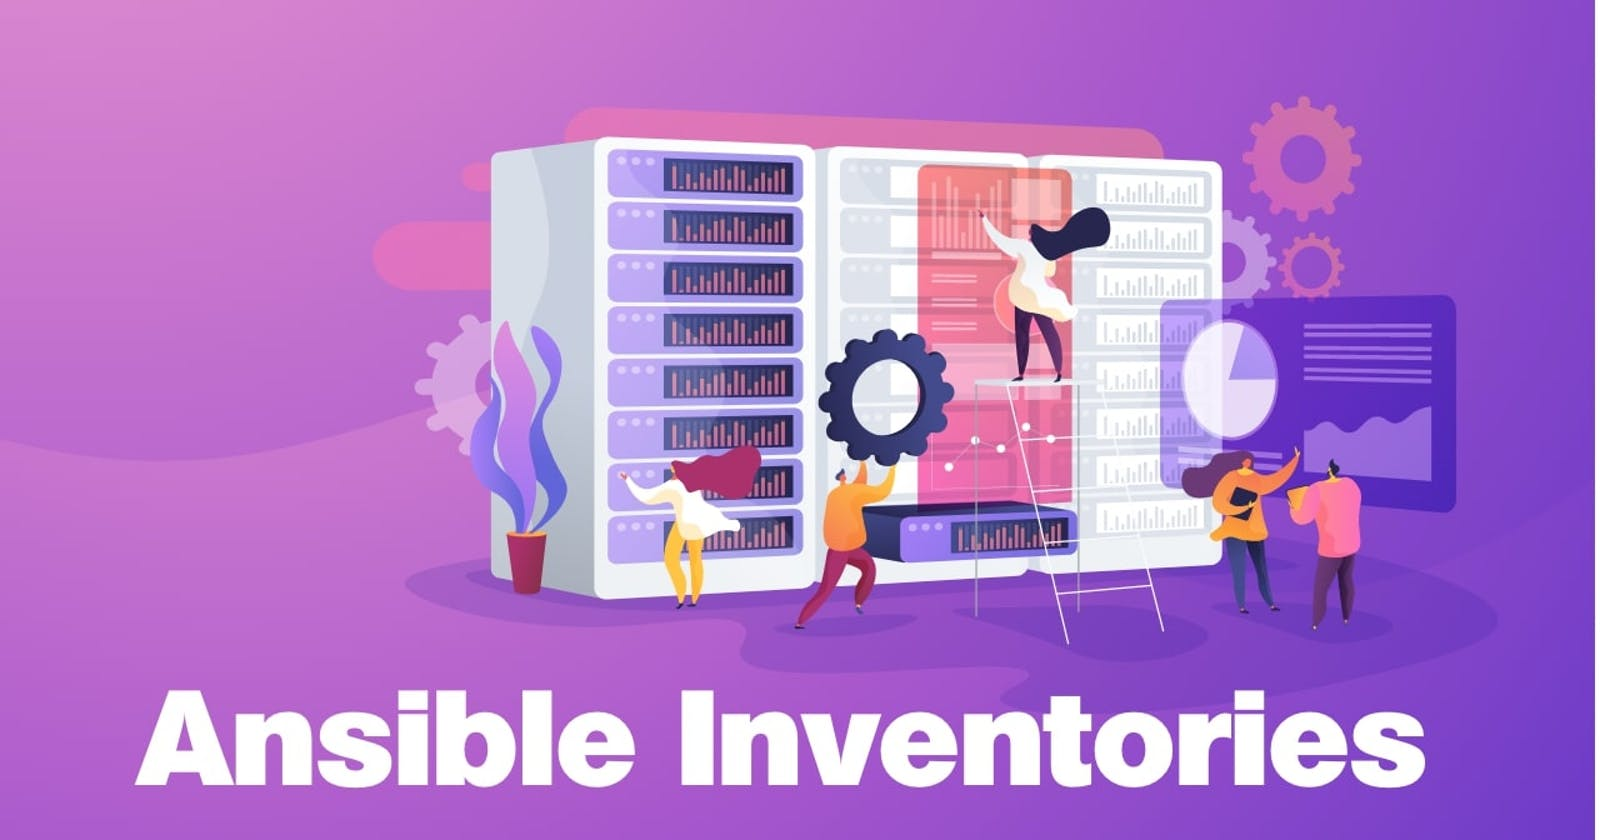 A deep dive into Ansible Inventories